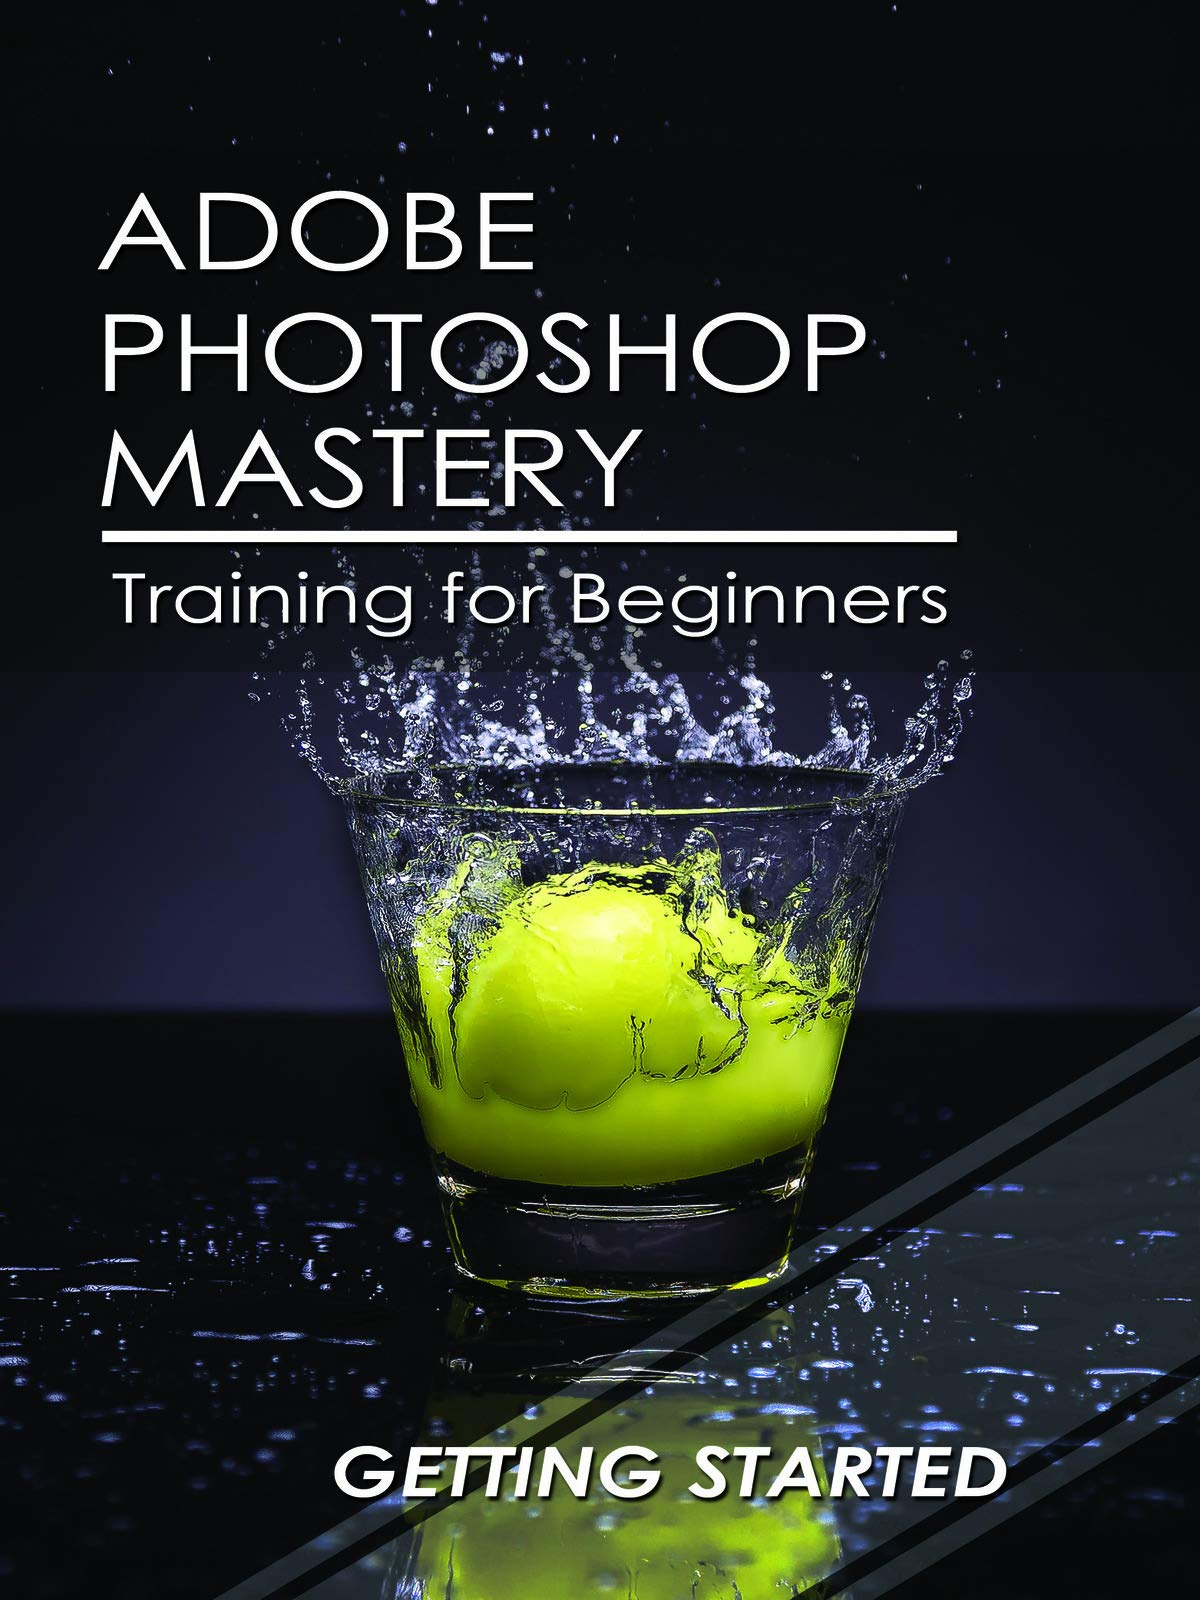 Adobe Photoshop Mastery: Training For Beginners: Getting Started